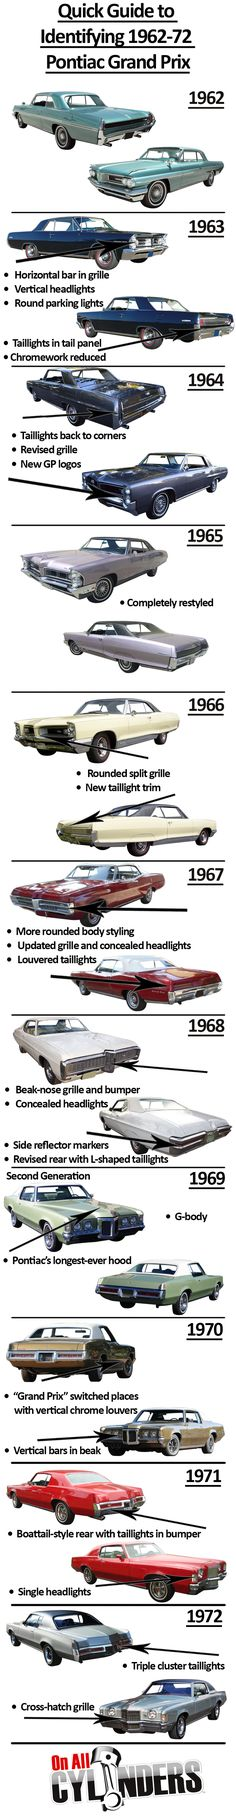 The Pontiac Grand Prix was born in model-year 1962. It was mostly the handiwork of famed auto engineer John DeLorean, who was also responsible for creating Pontiac GTO, Pontiac Firebird, Chevrolet …